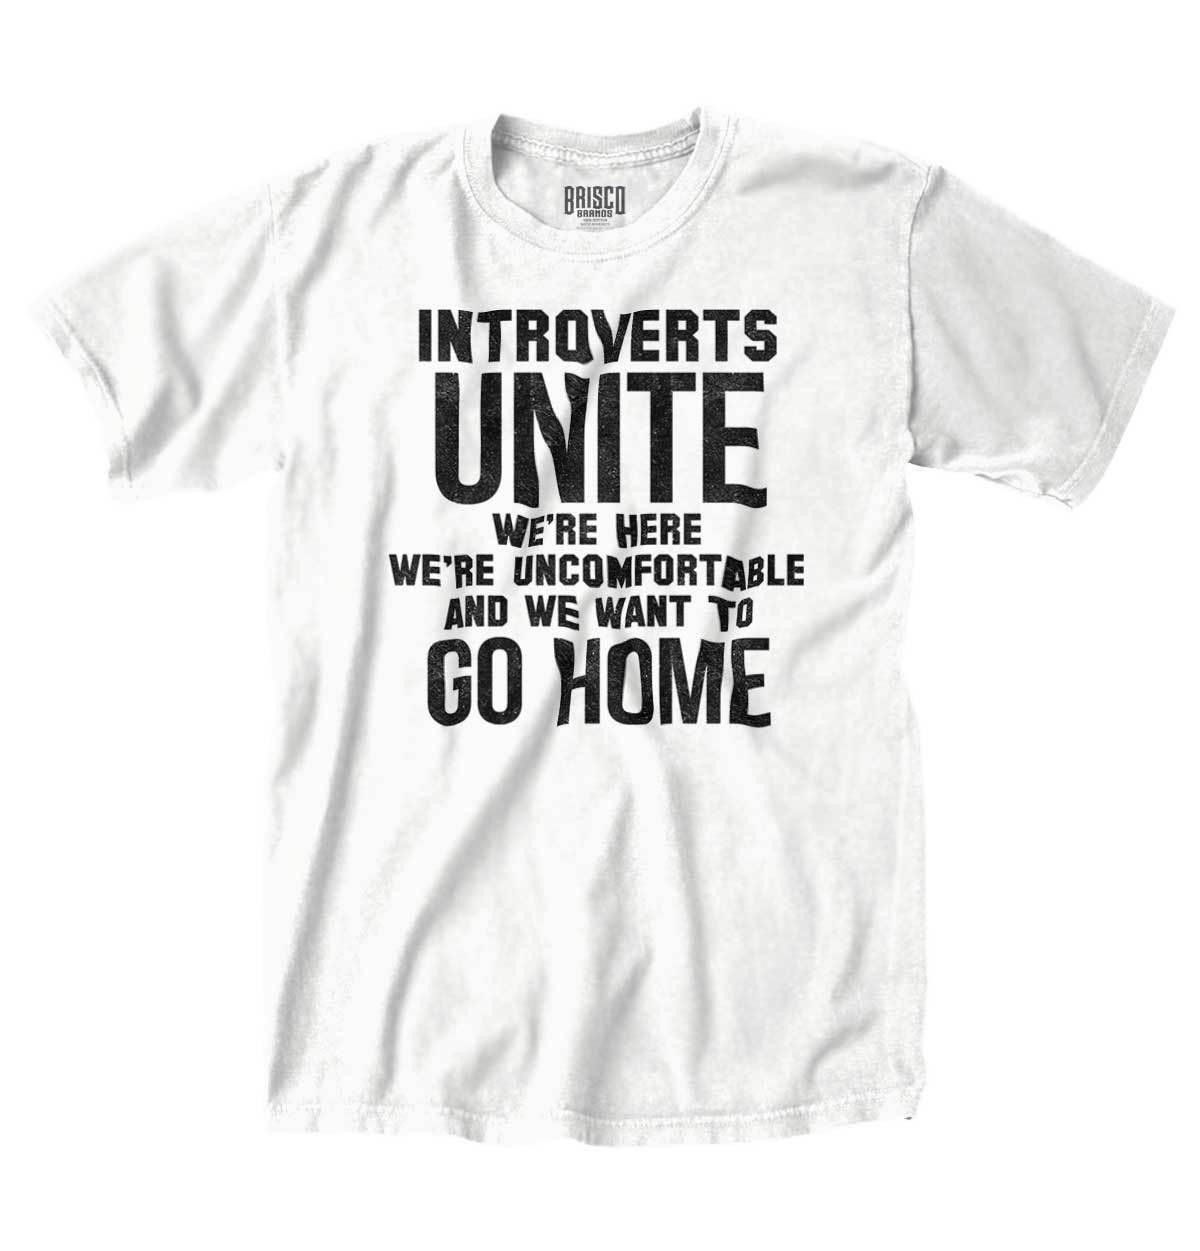 9bc9e5e6a Details Zu Introvert Unite Uncomfortable Go Home Funny Shirt Cool Gift T  Shirt Funny Unisex Casual Tee Gift Fun Tee Shirt Shop Online T Shirts From  ...